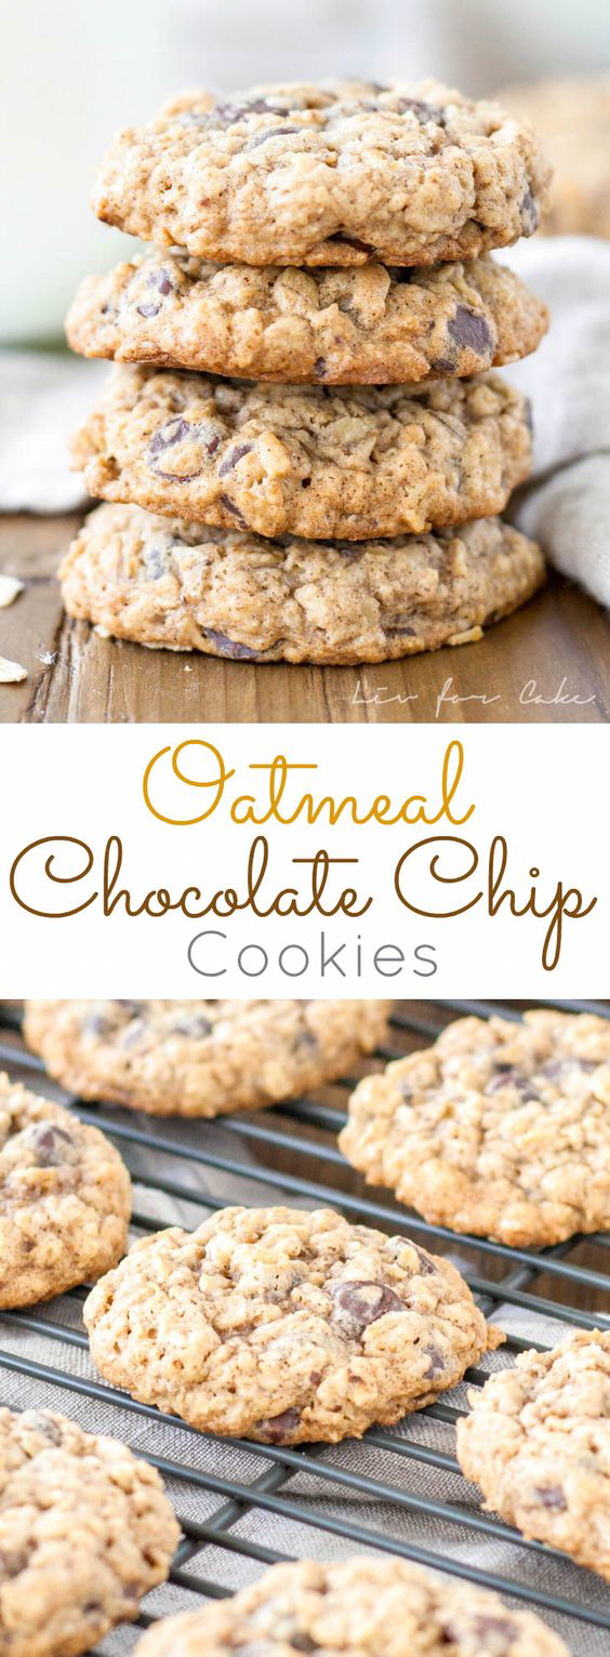 Oatmeal Chocolate Chip Cookies Recipe via Liv for Cake - So Yummy #chocolatechipcookies #chocolatechip #chocolatechiptreats #chocolatechipdesserts #chocolatechiprecipes